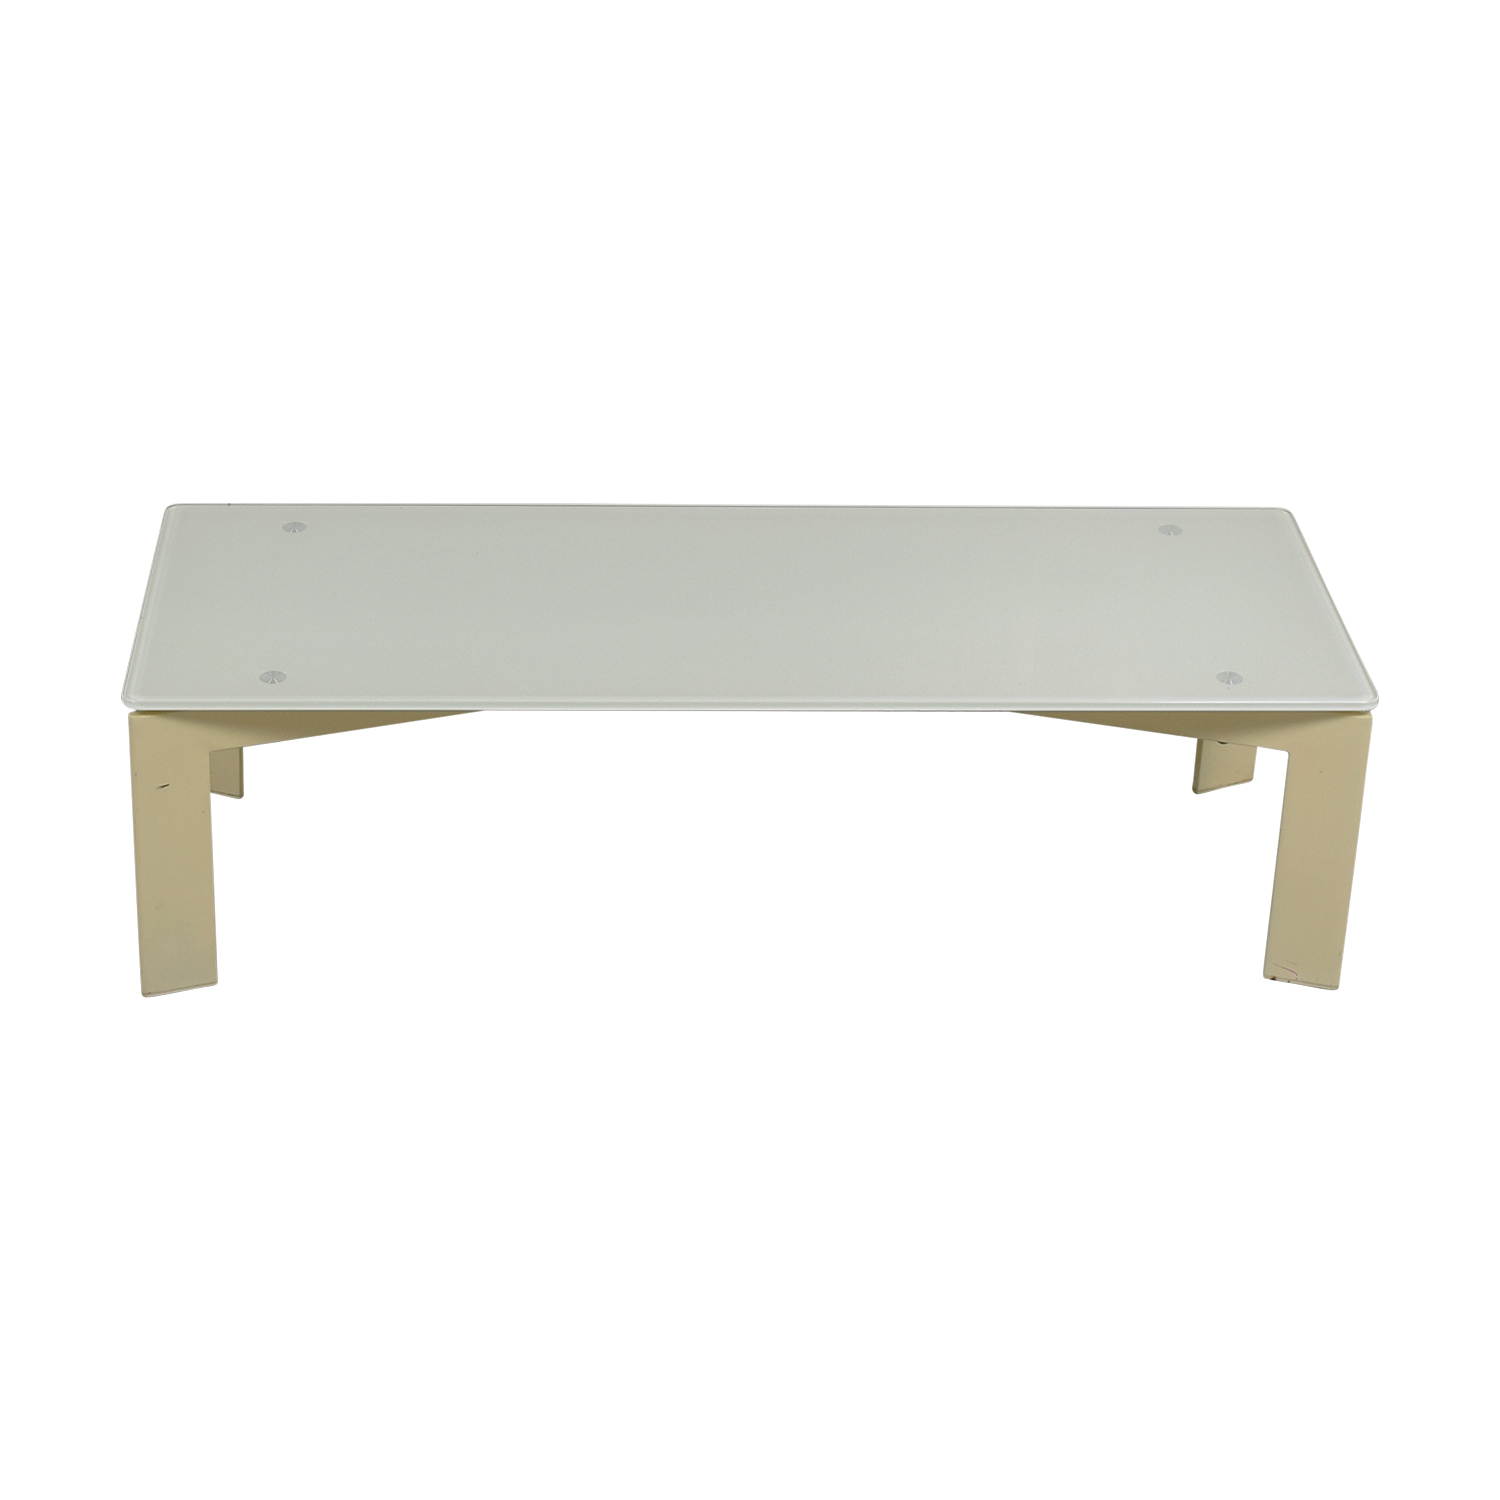 Beige Trunk Coffee Table: White And Beige Coffee Table / Tables